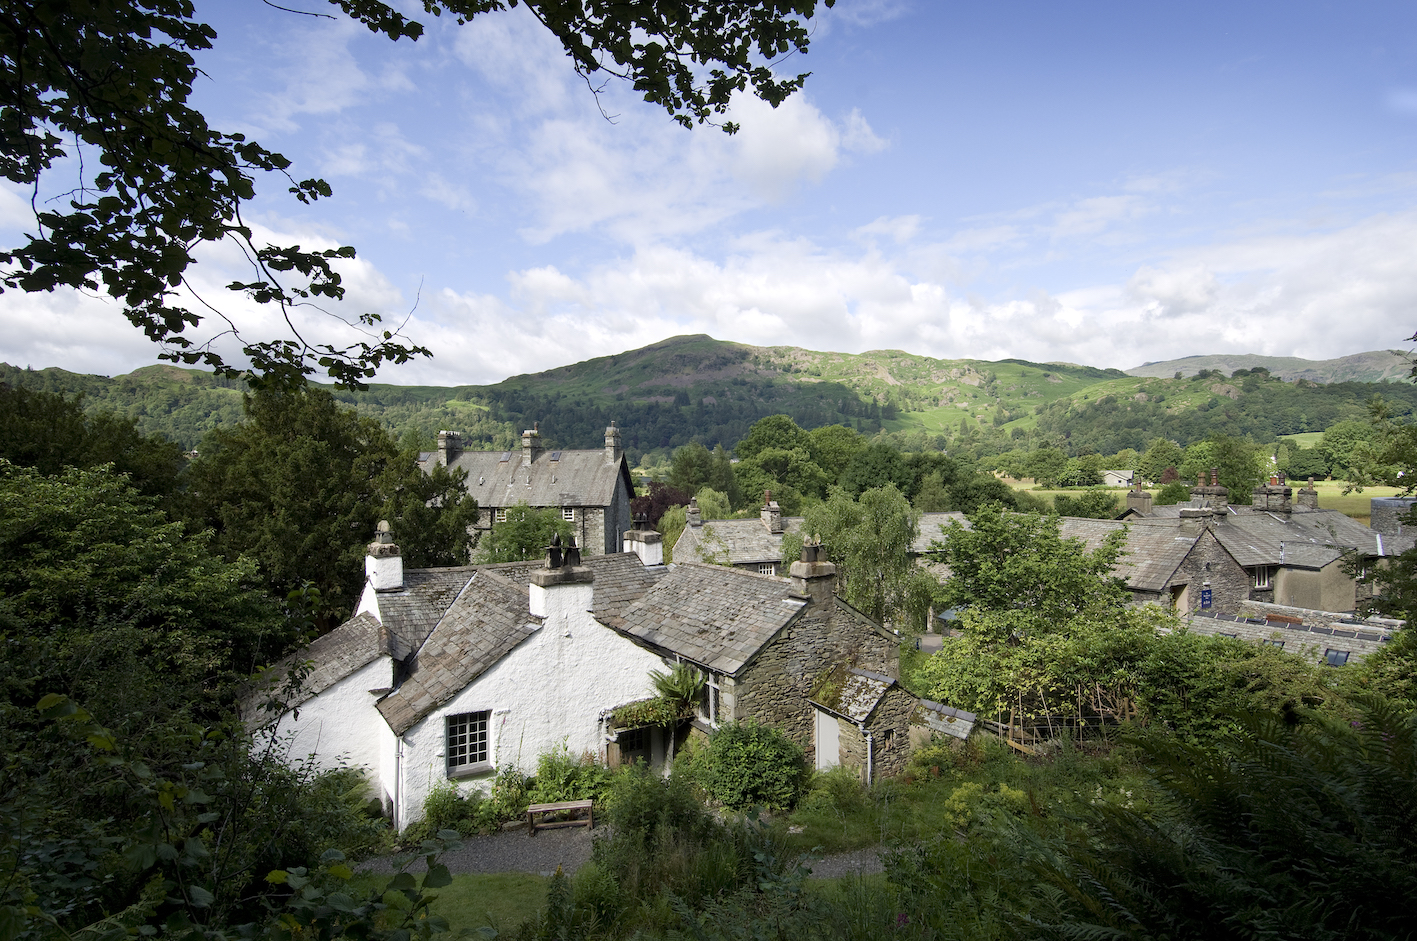 Wordsworth's £6m birthday present